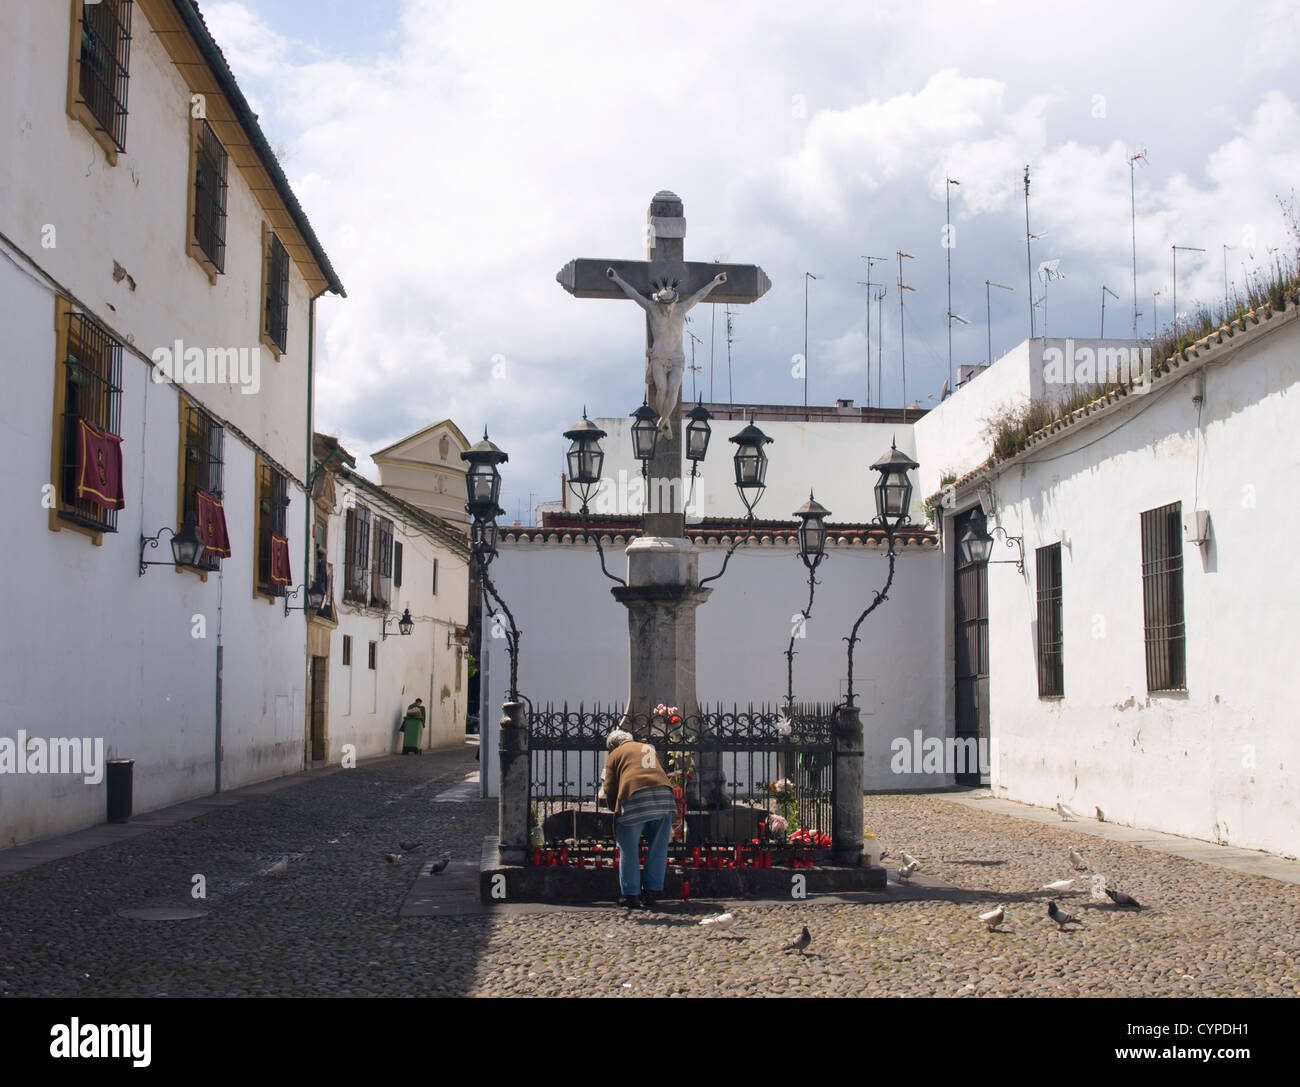 Calvary in stone with worshiper arranging flowers, Plaza de los Capuchinos, Cordoba Andalusia Spain - Stock Image